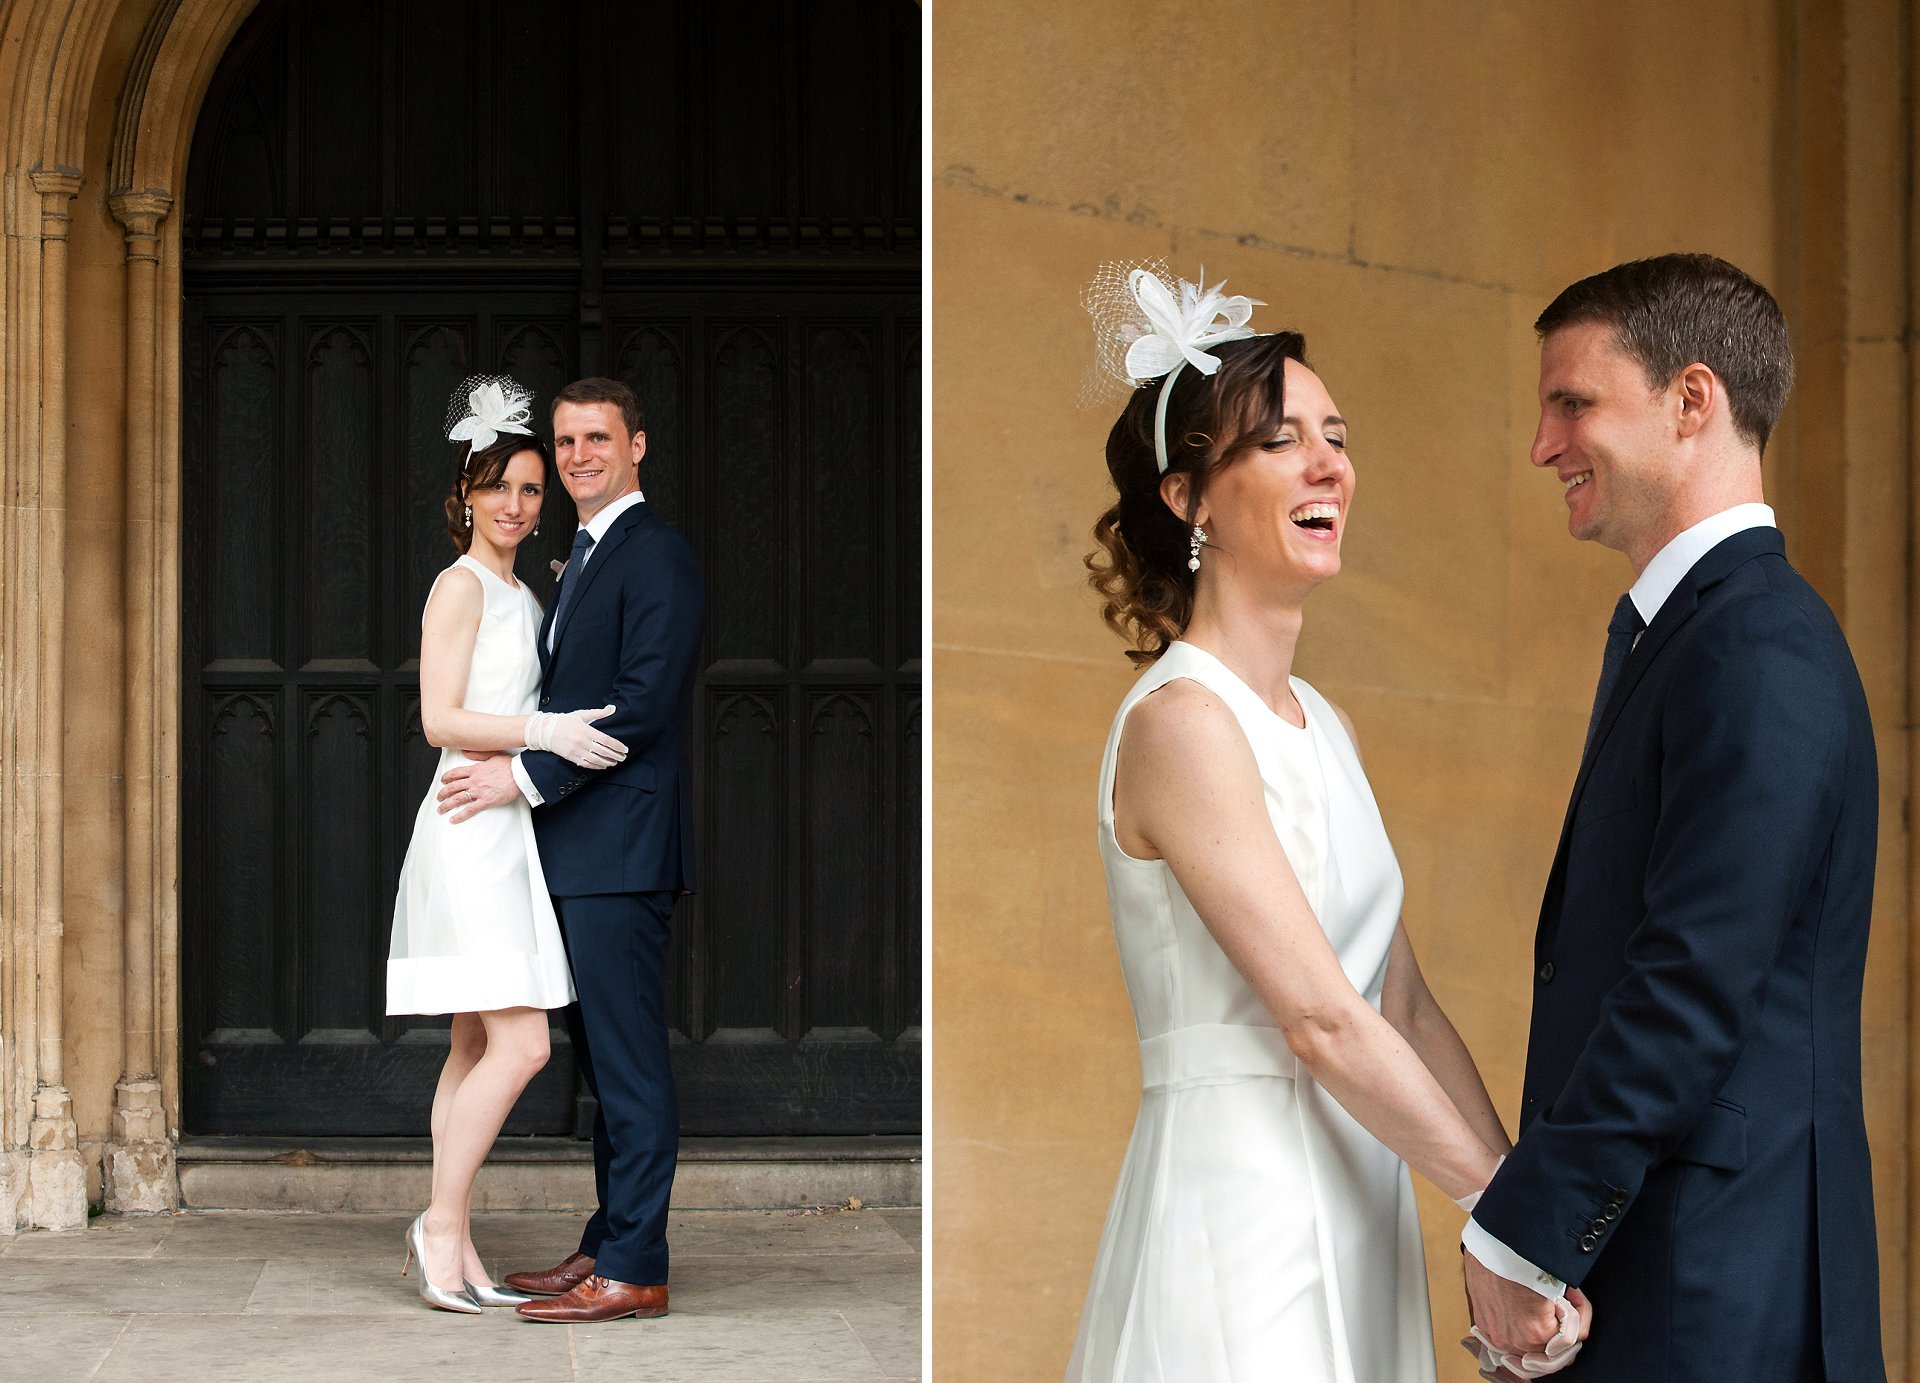 Bride and groom after their Chelsea Register Office wedding - the bride in a white A line skater dress in satin and organza with an alice band fascinator, white gloves and silver court shoes, and the groom with a navy suit and brown brogues